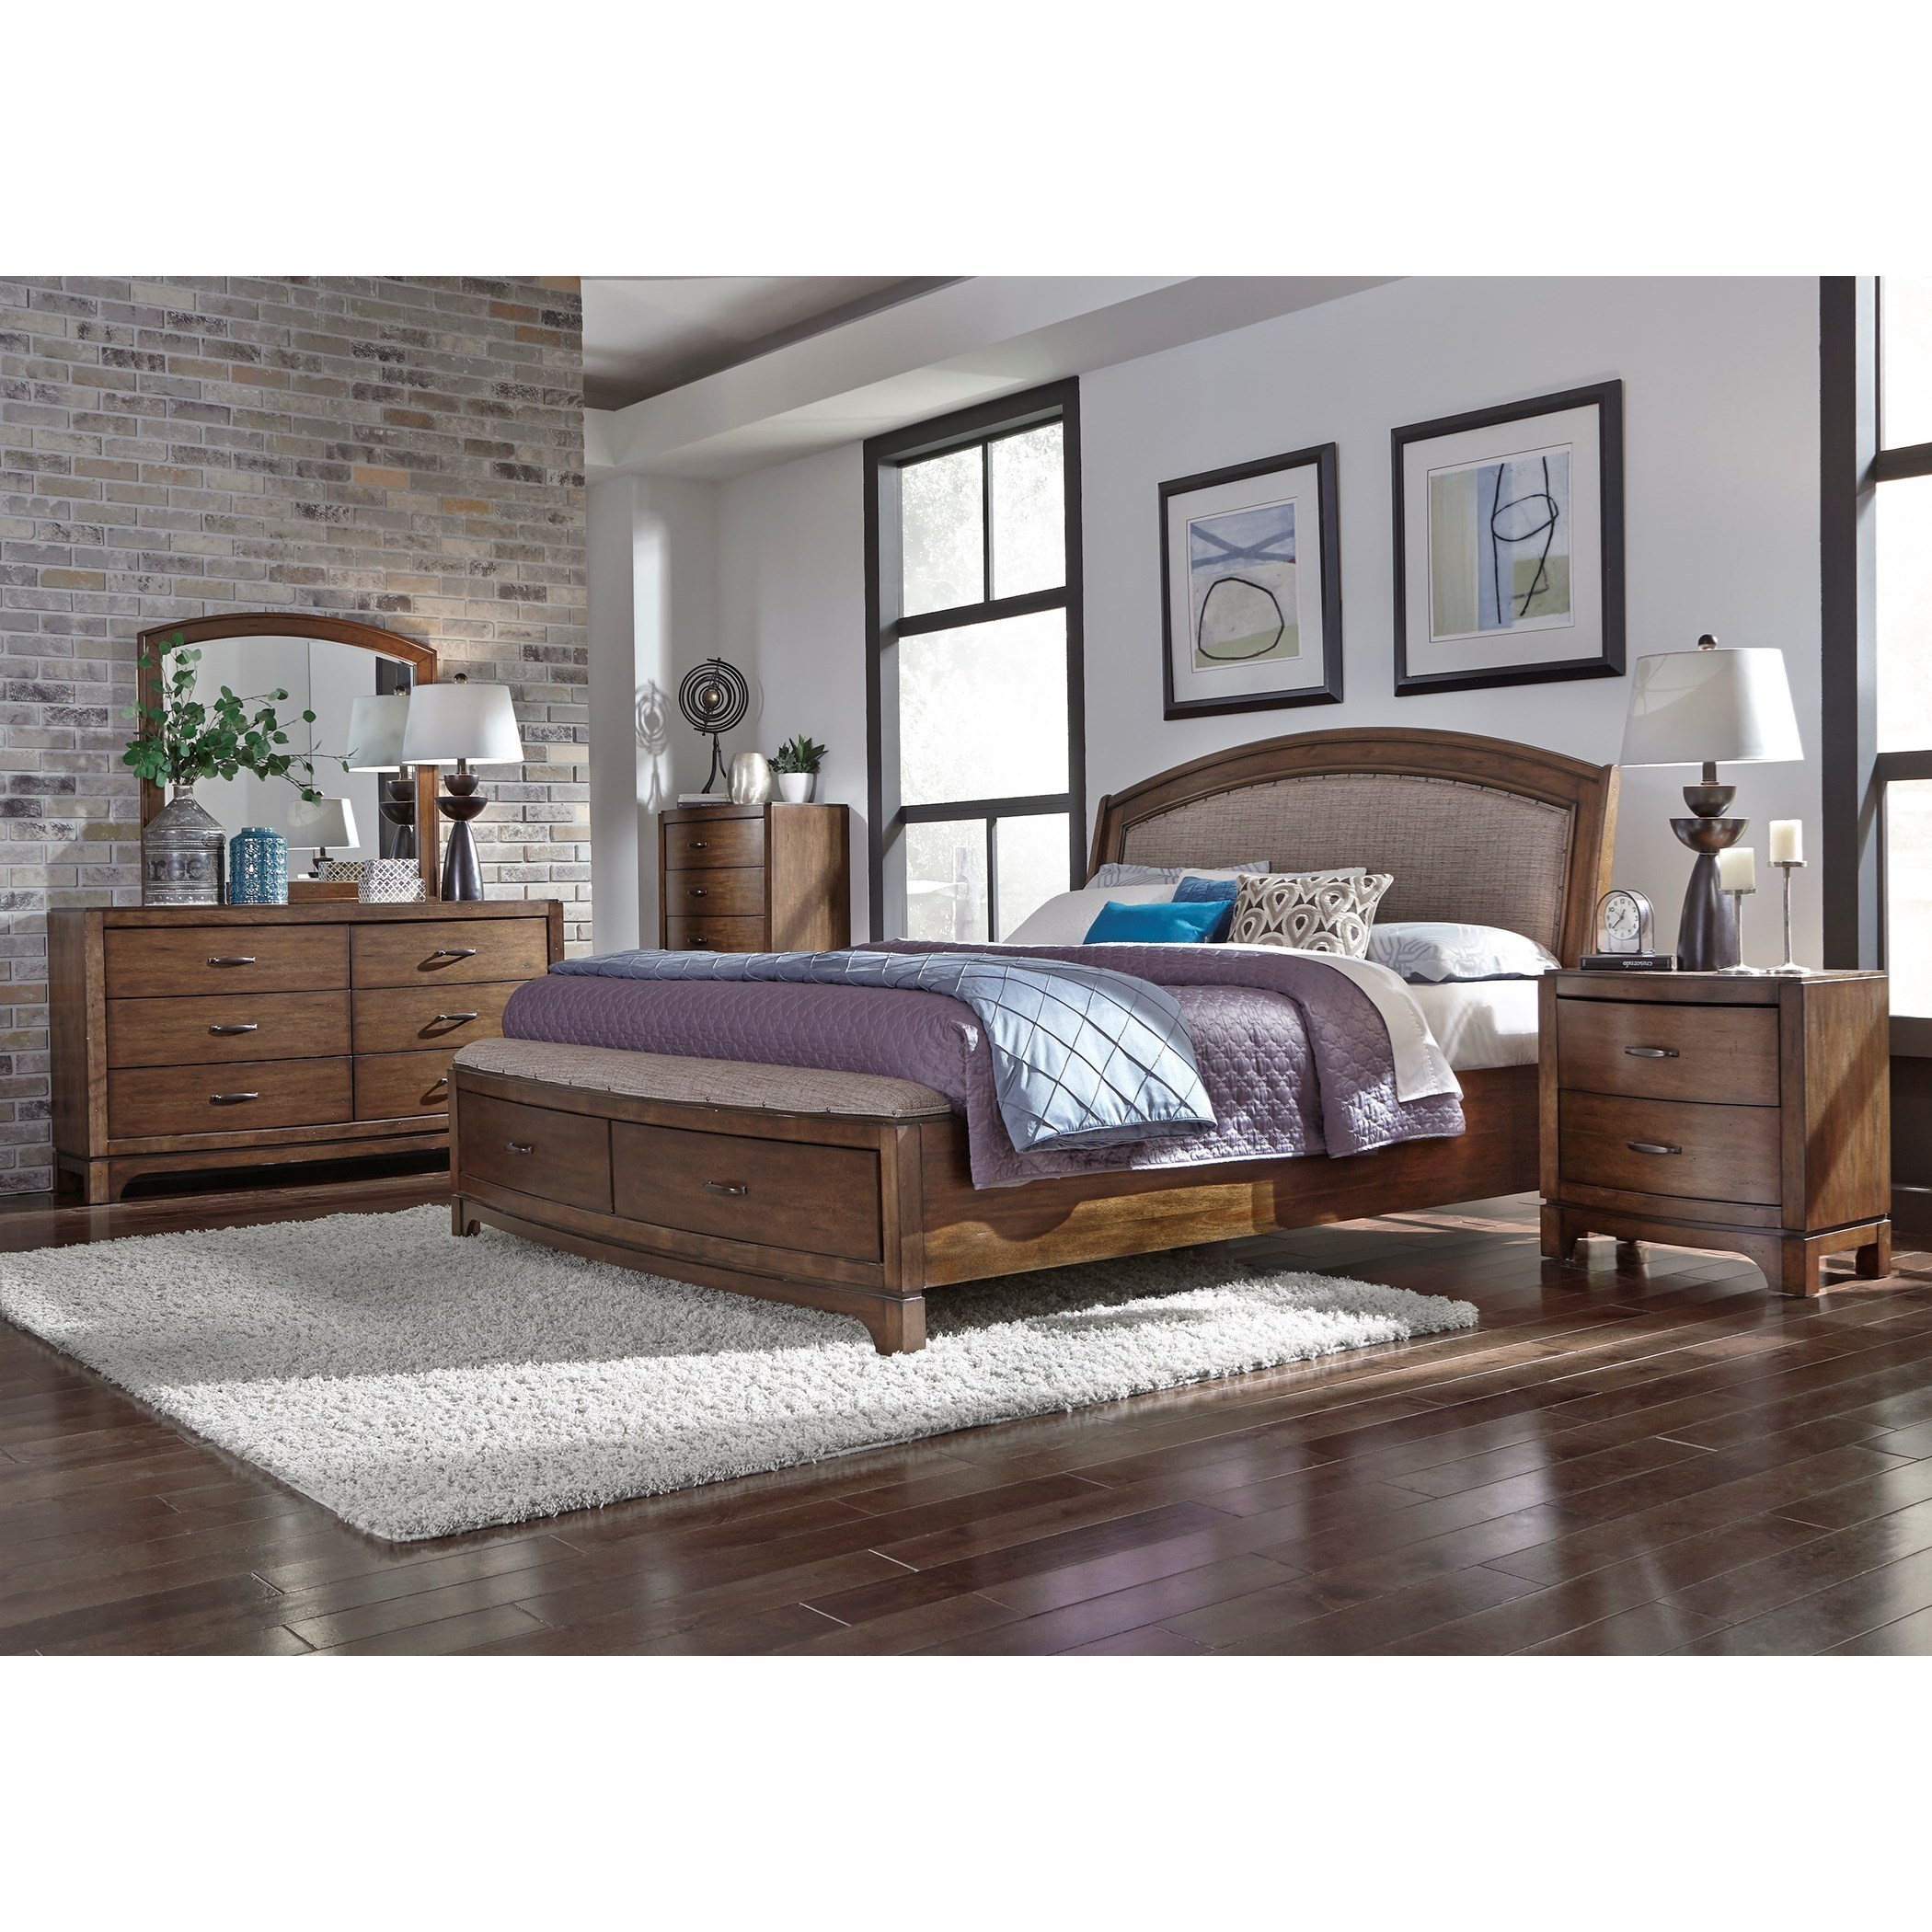 Liberty furniture avalon iii queen bedroom group prime for Bedroom furniture groups